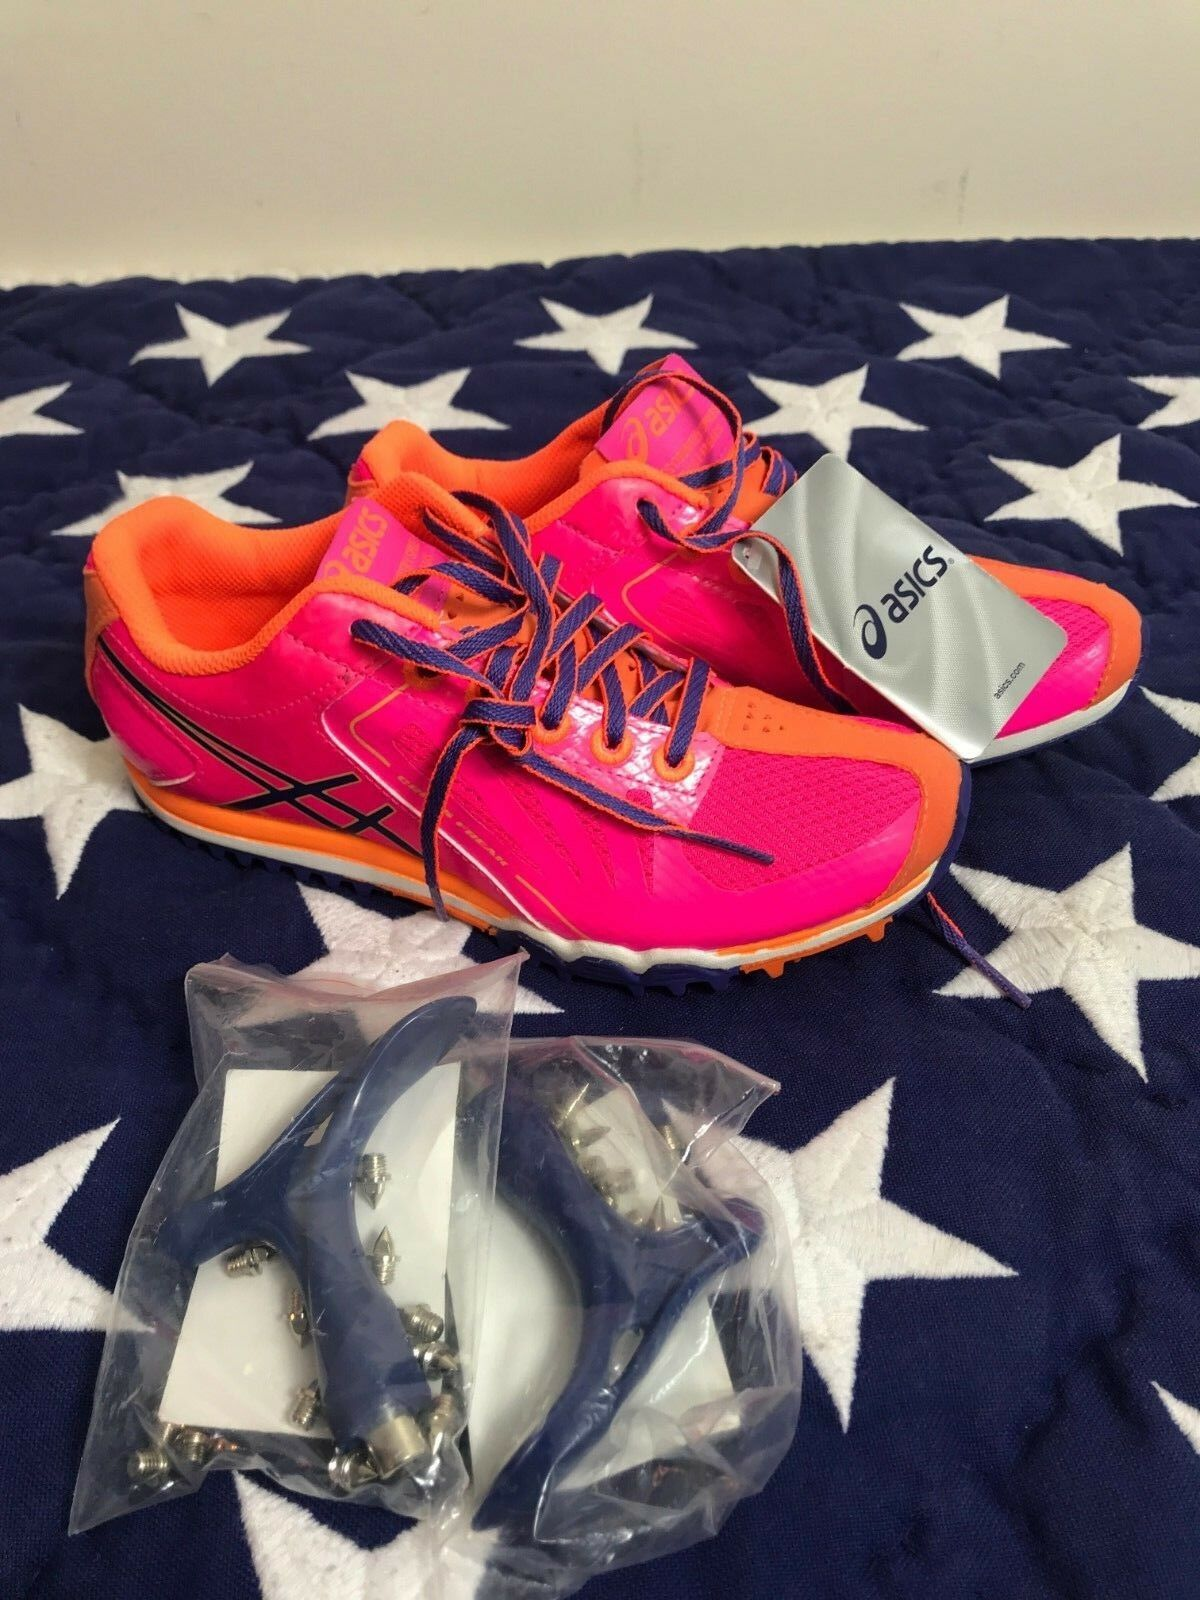 ASICS Women's Cross Freak shoes - sz 5 1 2 new with tags